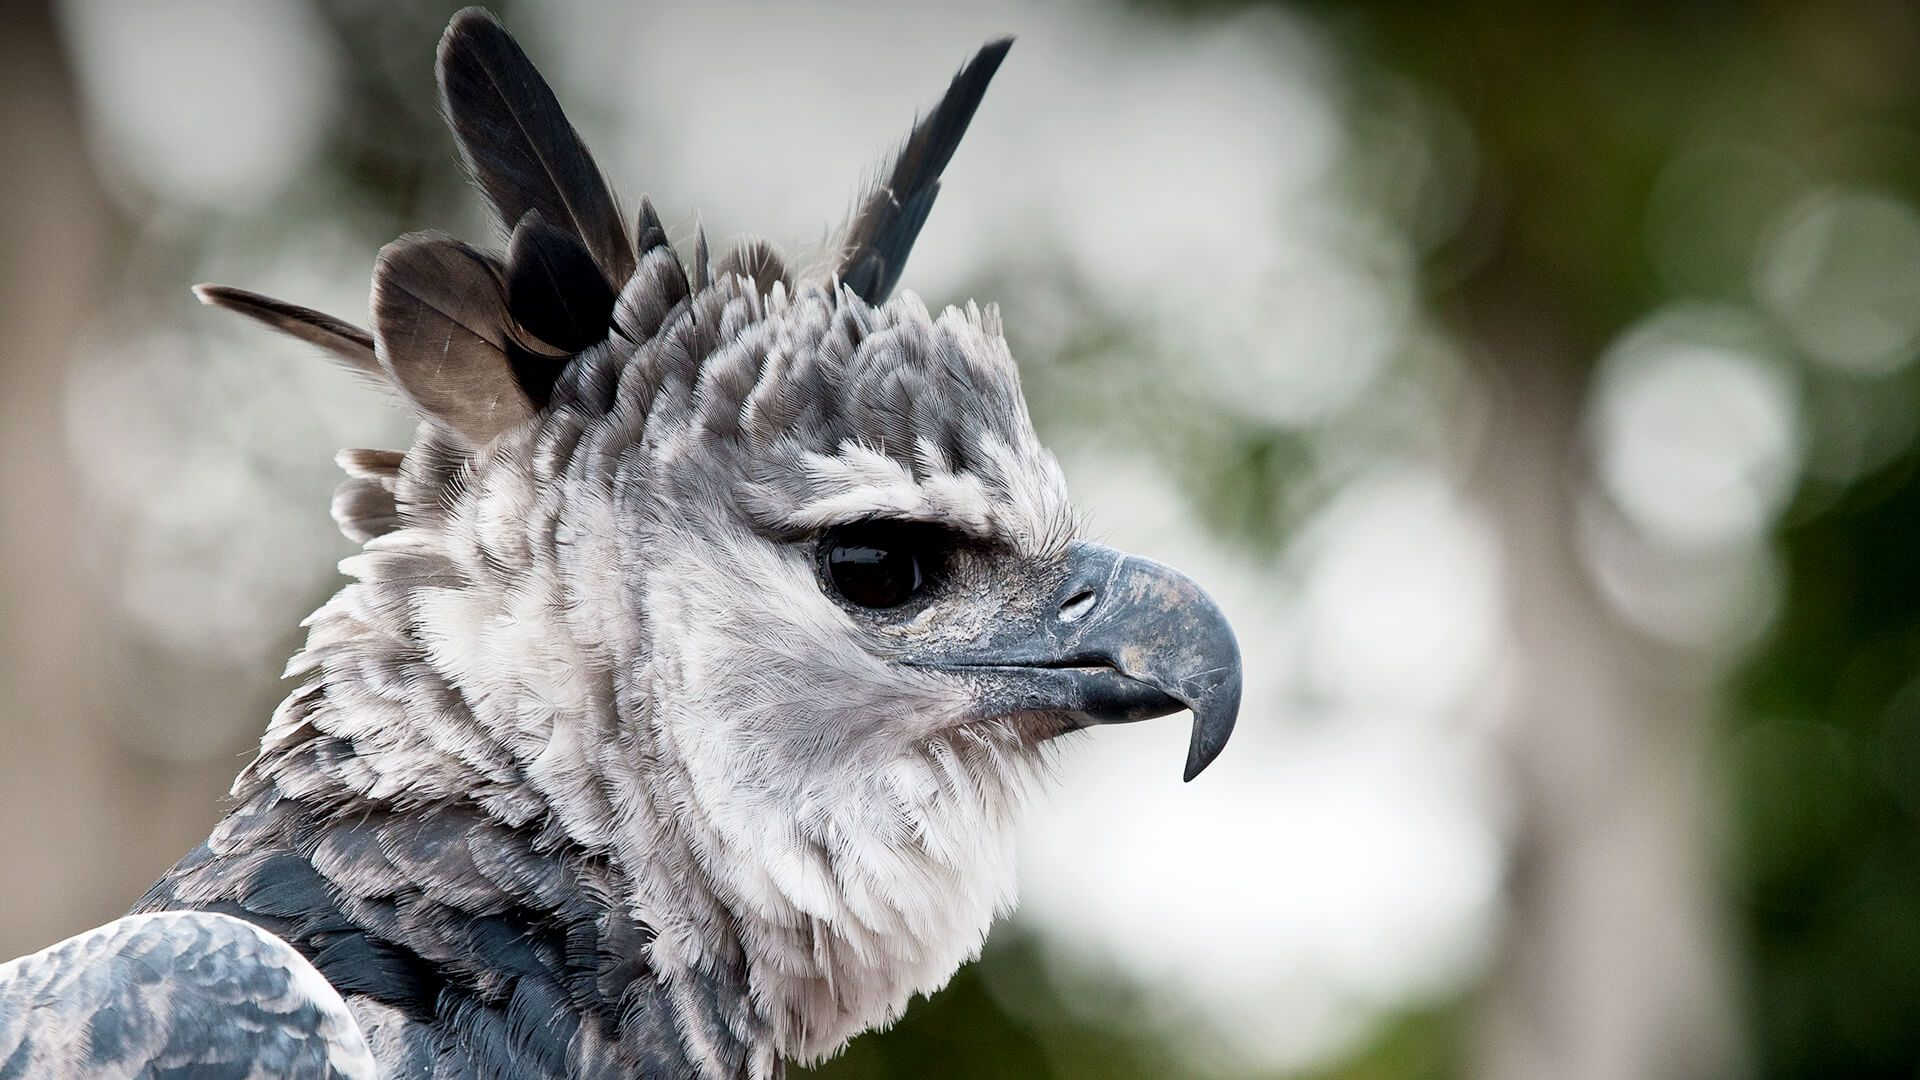 animals_hero_harpy_eagle.jpg